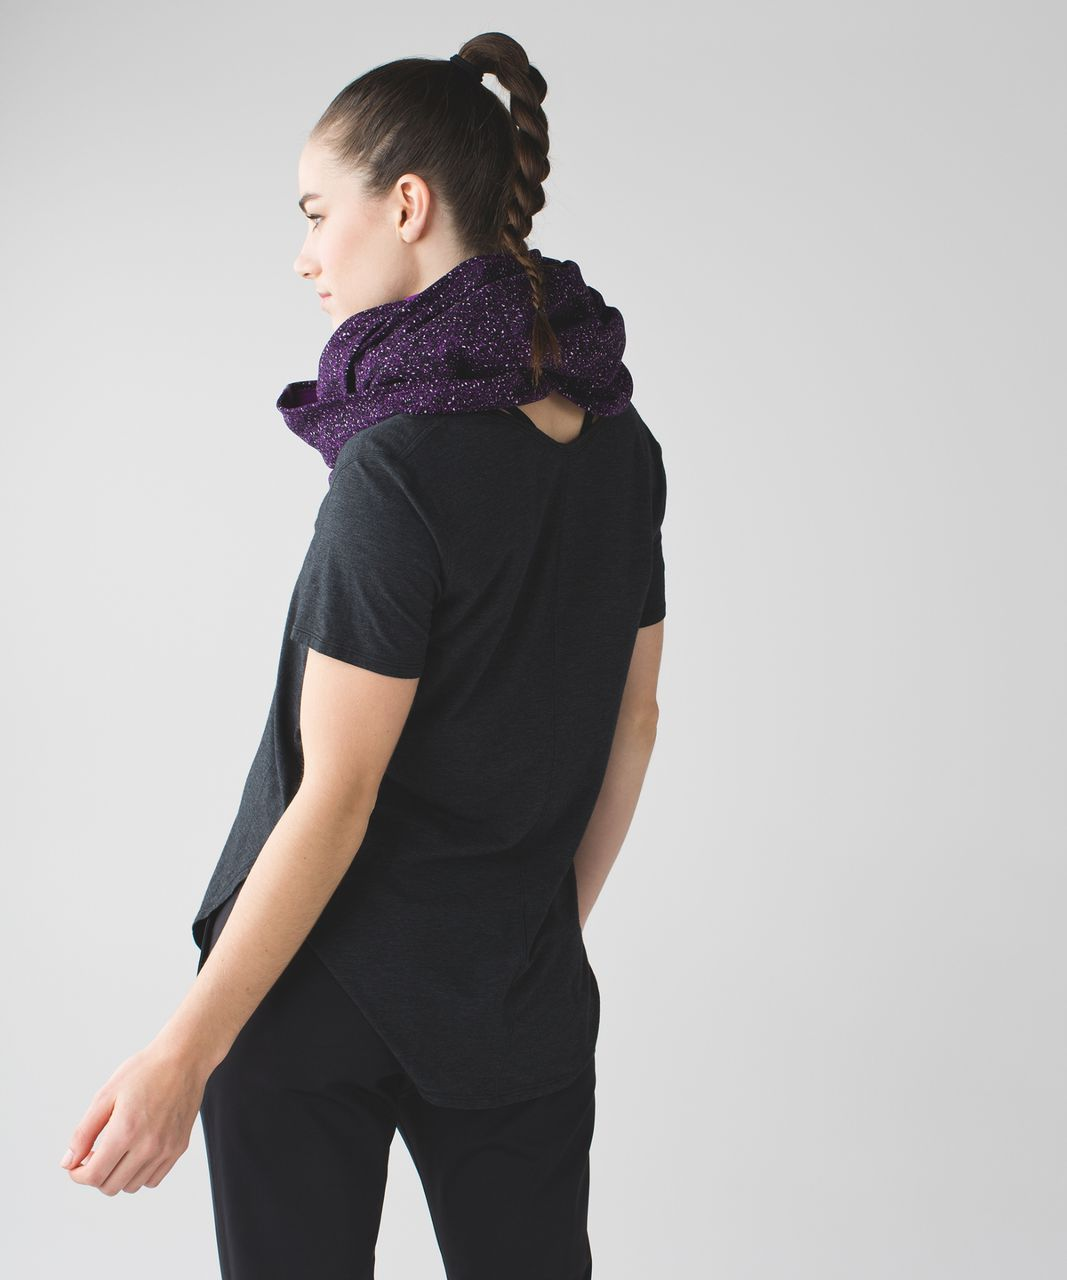 Lululemon Vinyasa Scarf *Fleece - Flashback Static Powdered Rose Tender Violet / Tender Violet